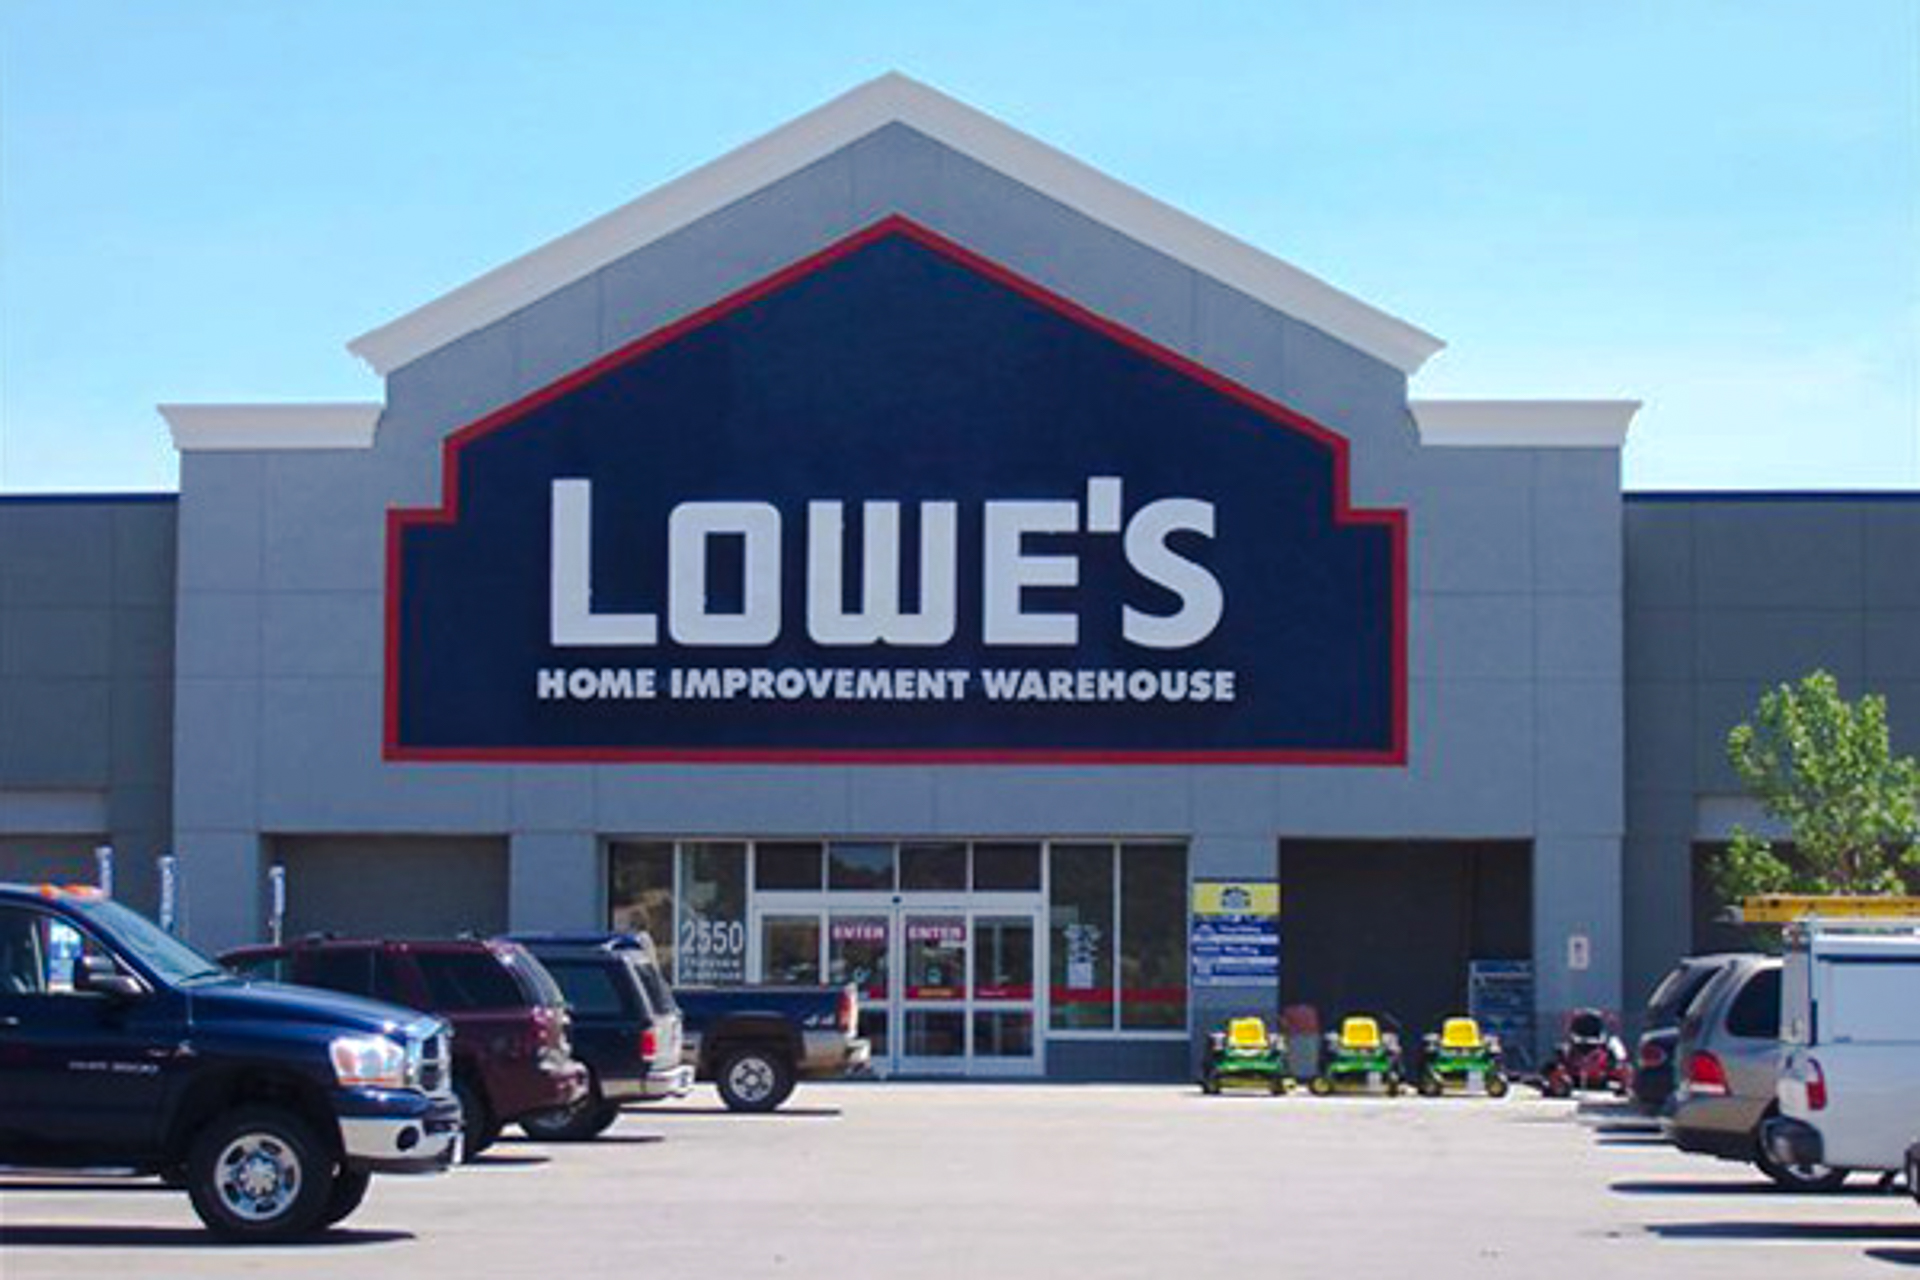 Gray Lowes Lowes 4236 Lowes Drive Temple Tx 76502 Lowes Temple Tx Phone Lowes Spokane Lowes Spokane Kitchen Compost Pail Lowes houzz 01 Lowes Temple Tx